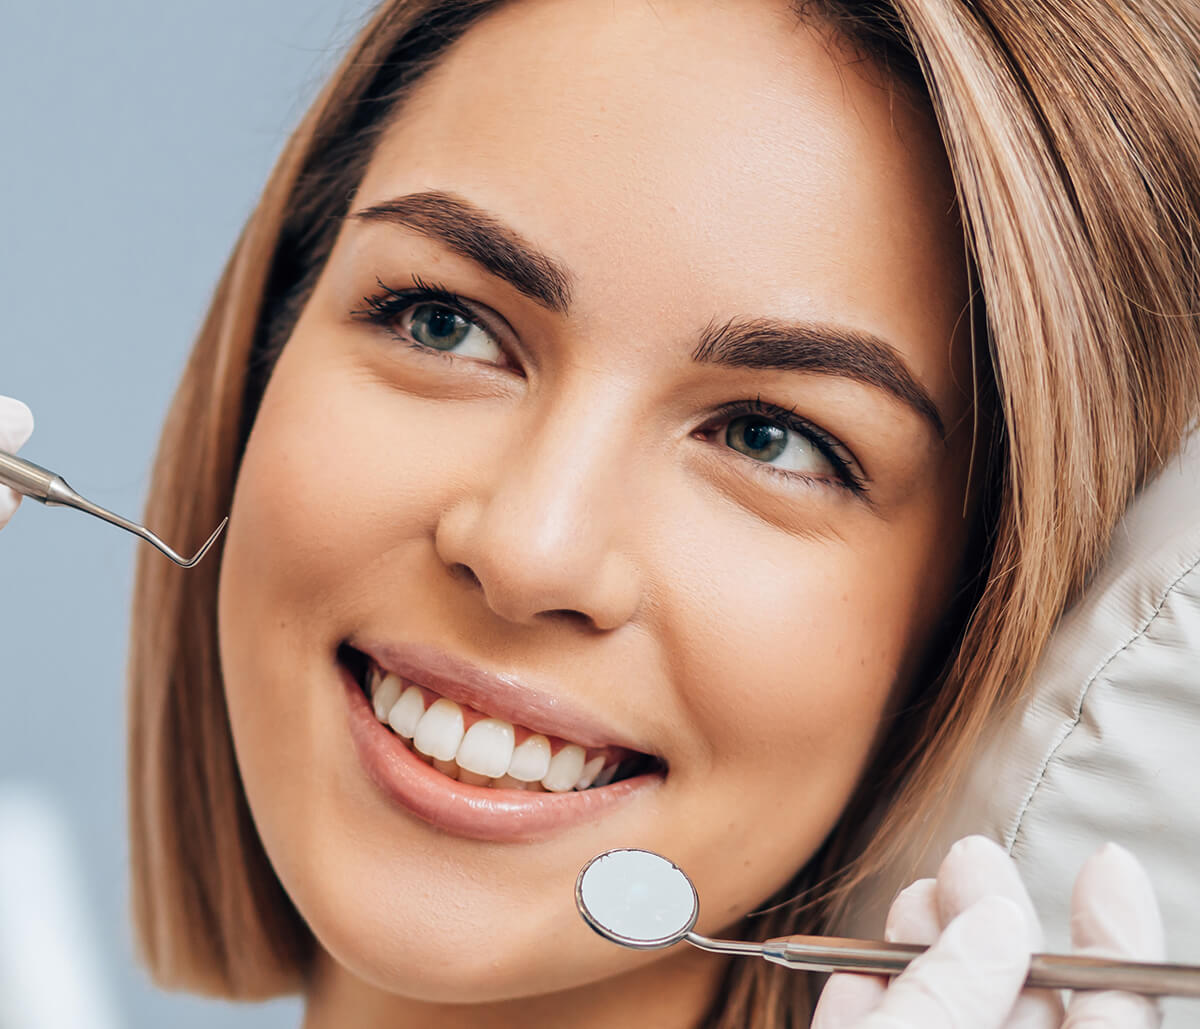 Dentist for Wisdom Tooth Extraction in Greensboro NC Area